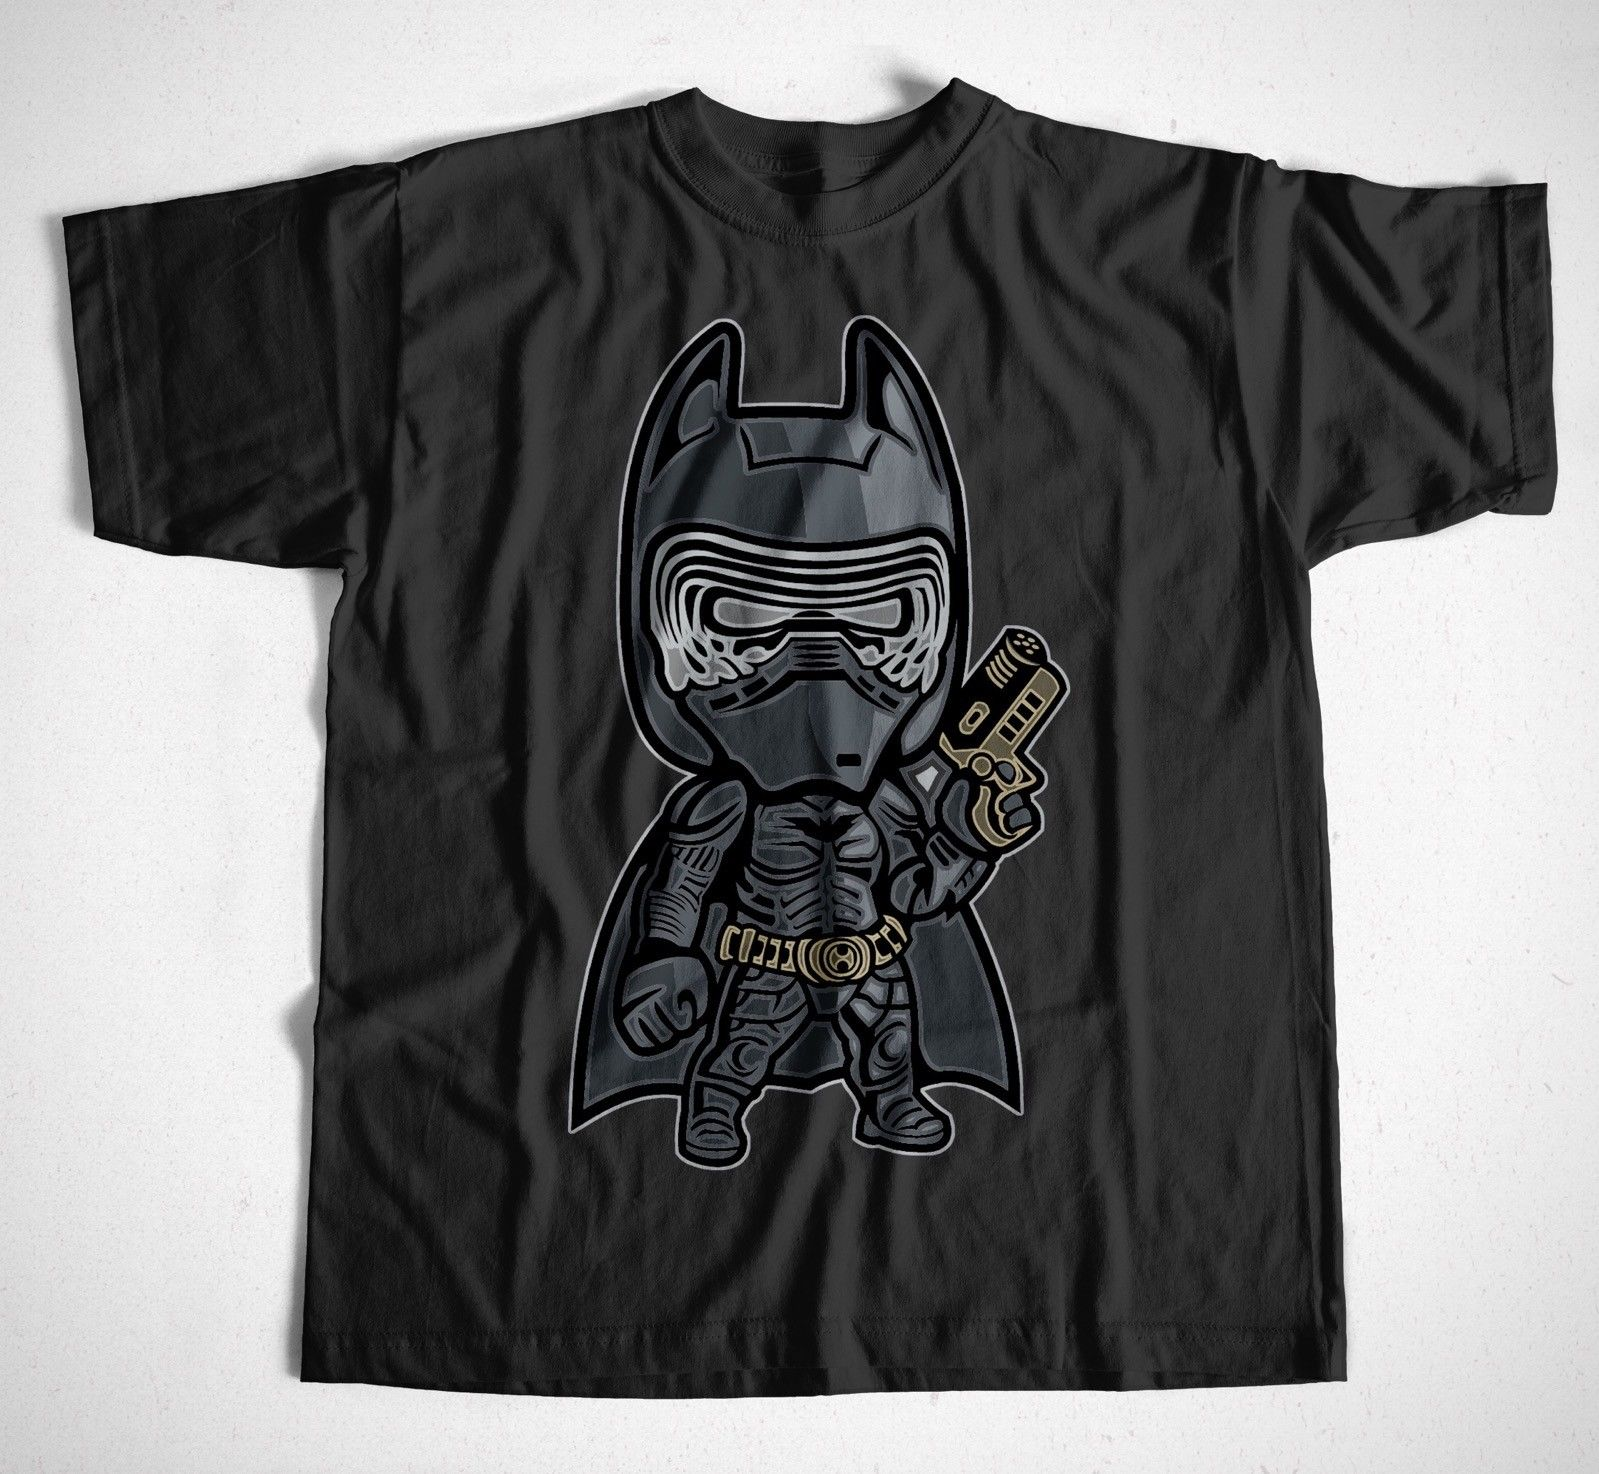 Darkest Night S Xxl Dark Knight Batman Starwars Darth Vader Jedi Sith